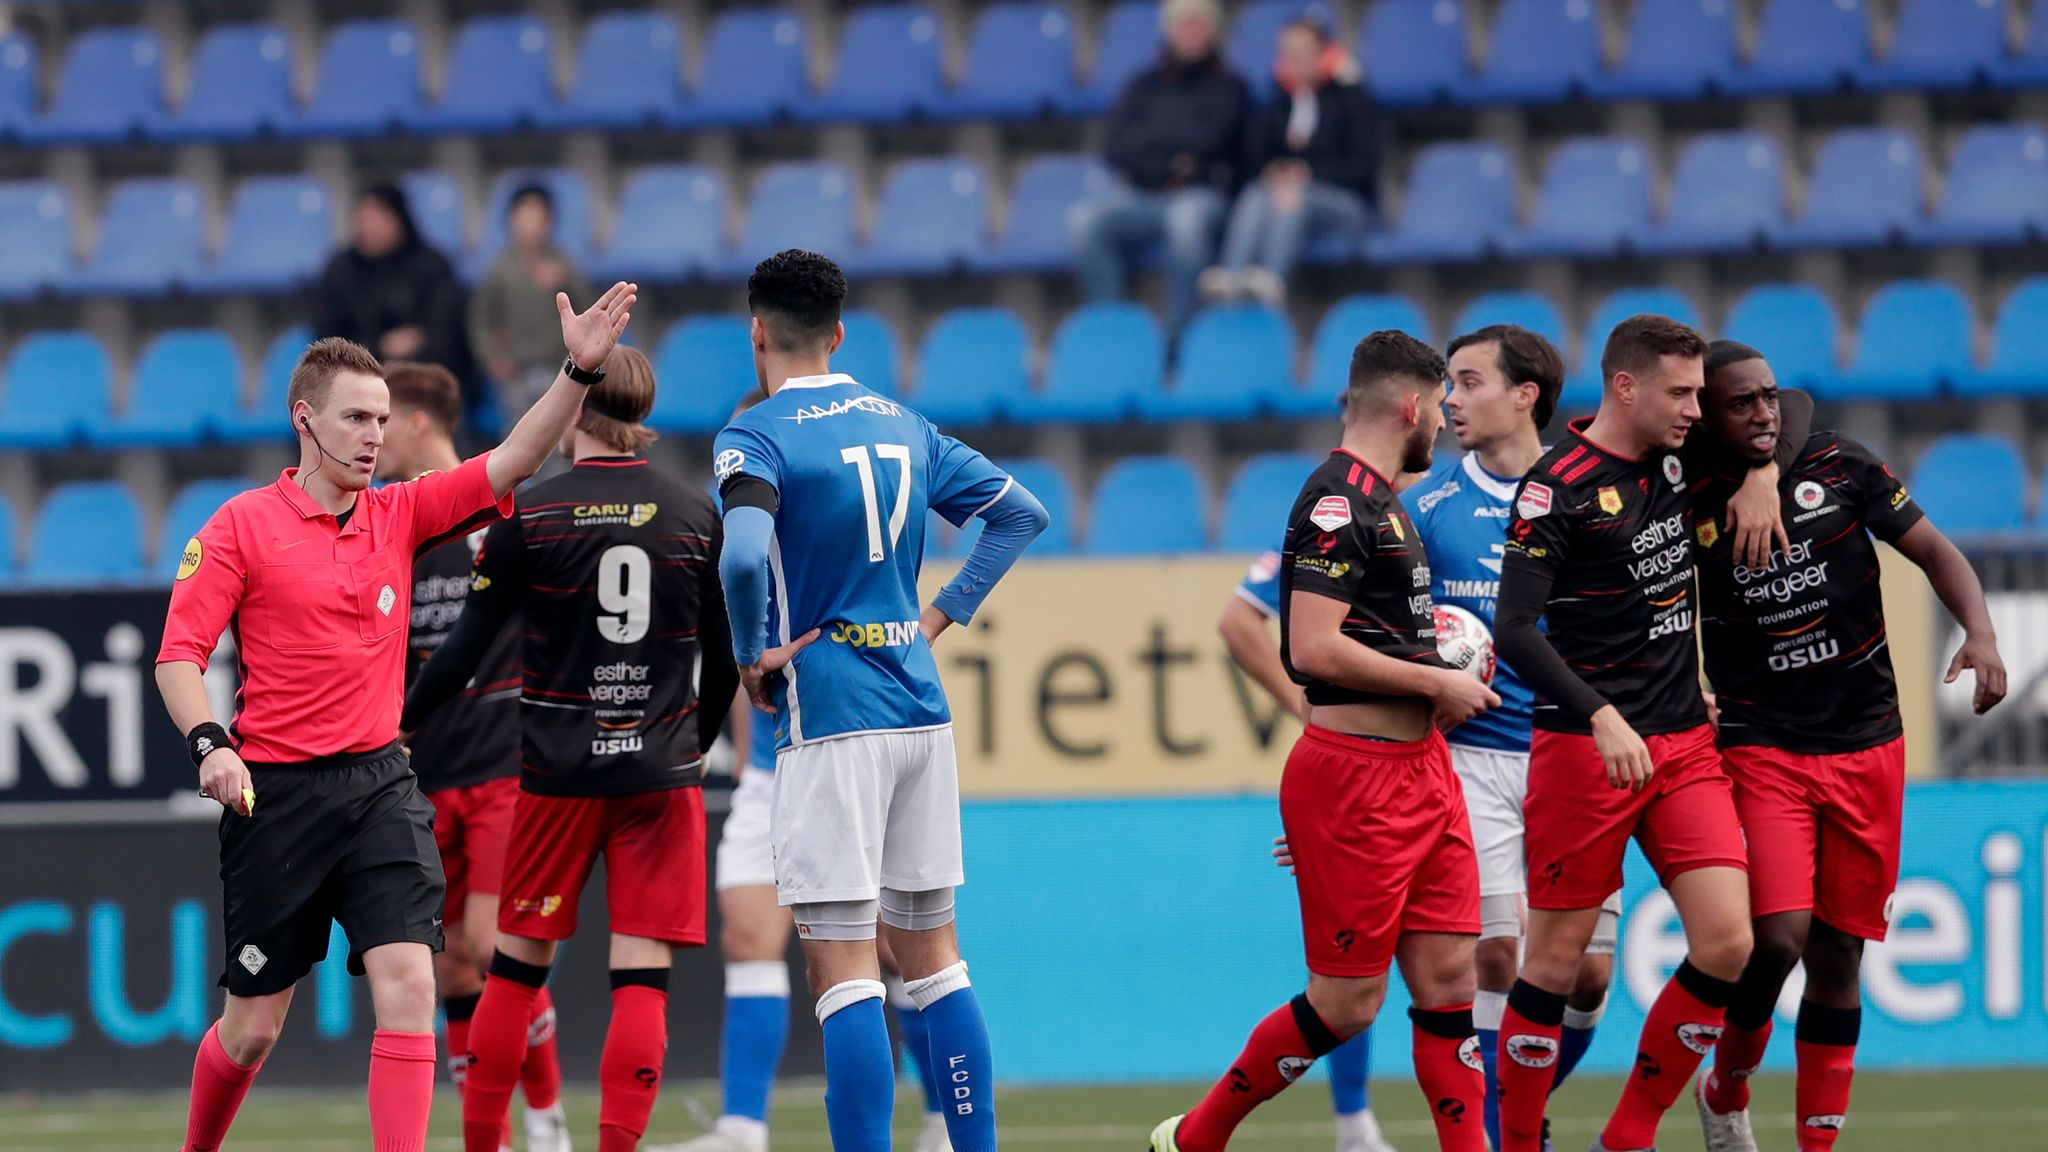 Memphis Depay hits out after Excelsior striker walks off after alleged racist abuse